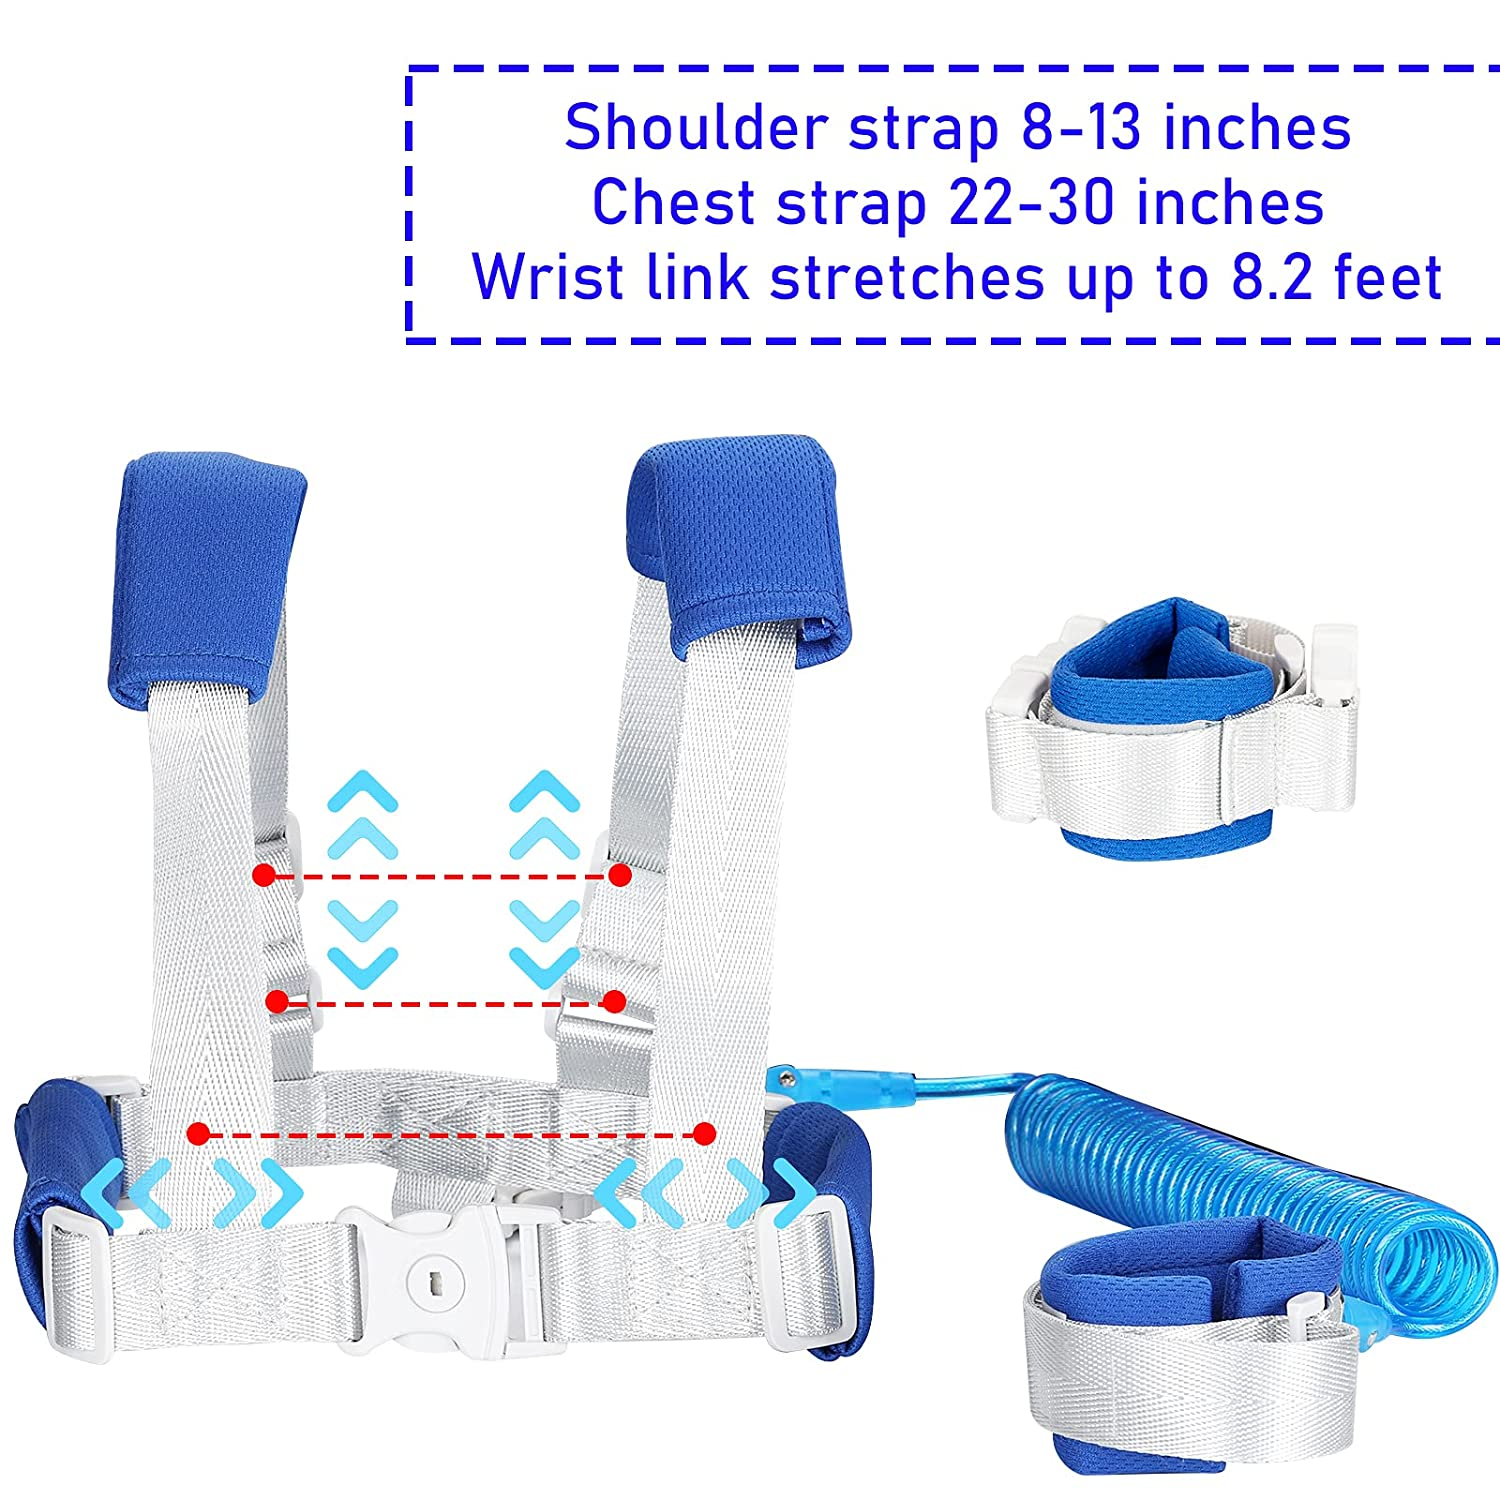 2 in 1 Baby Leash,Safety Toddler Leash Harness Anti Lost Wrist Link with Backpack Harness for Child Safety Wristband Leash(Blue, 8.2ft Length)